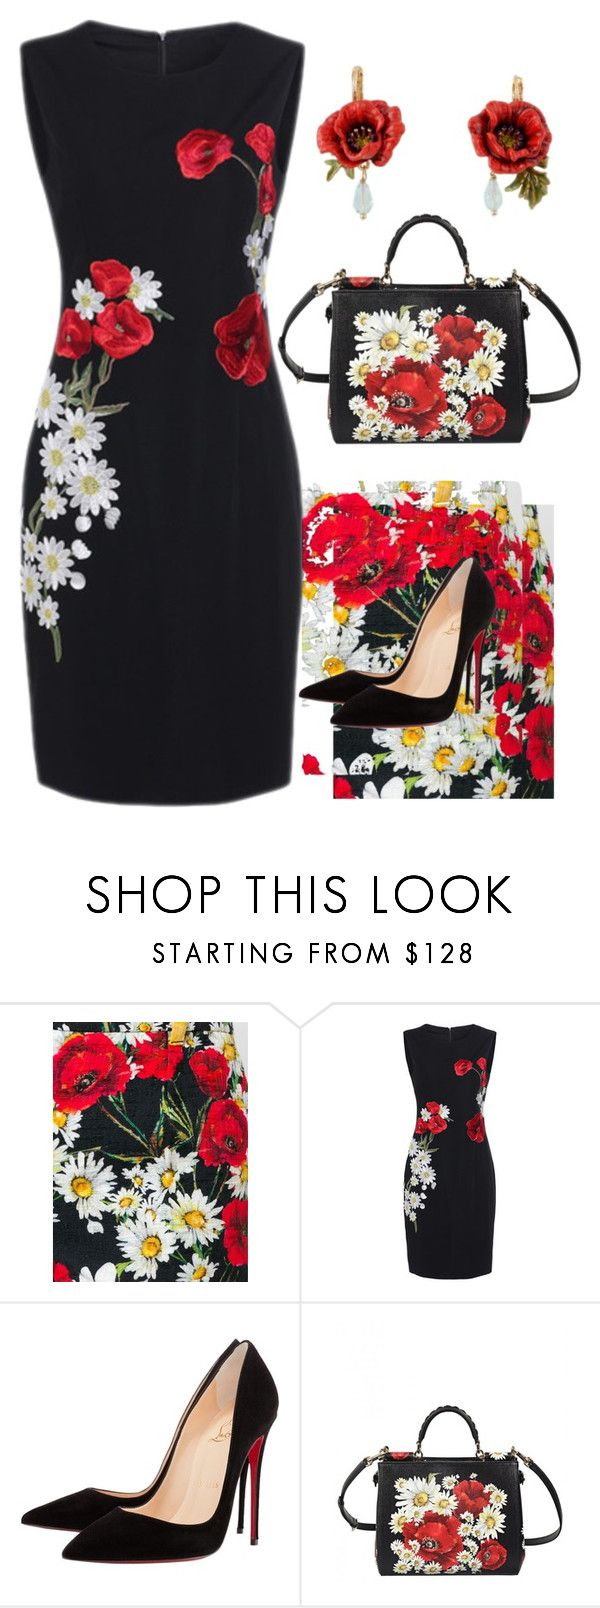 """""""Red Poppies"""" by easy-dressing ❤ liked on Polyvore featuring Dolce&Gabbana and Christian Louboutin"""